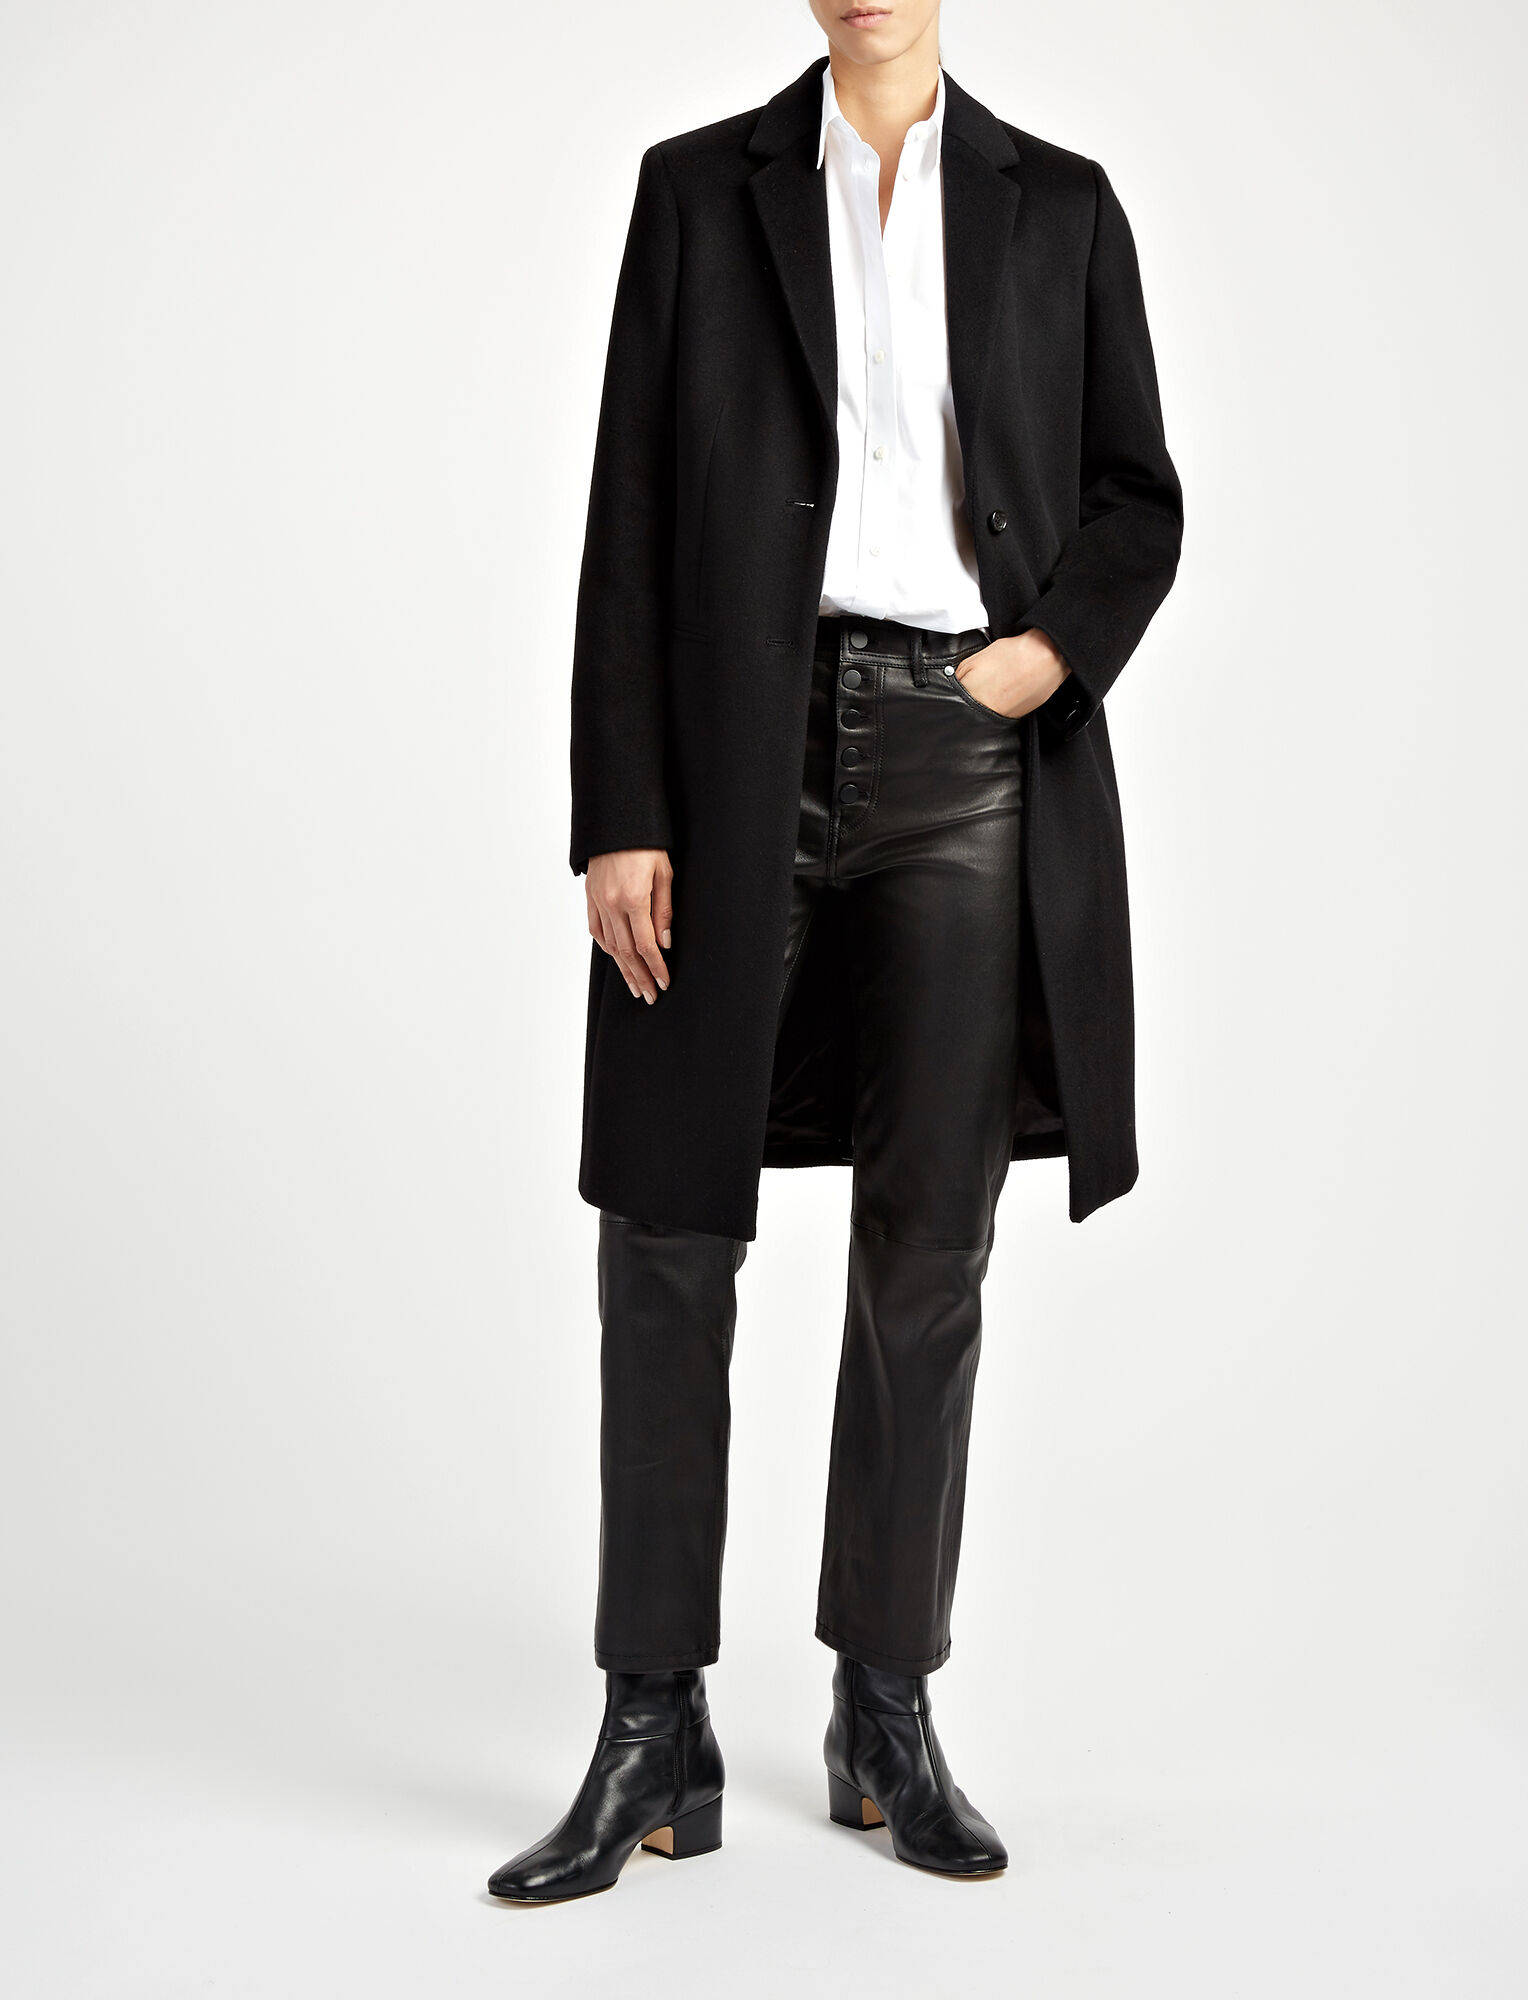 Joseph, New Wool Martin Coat, in BLACK